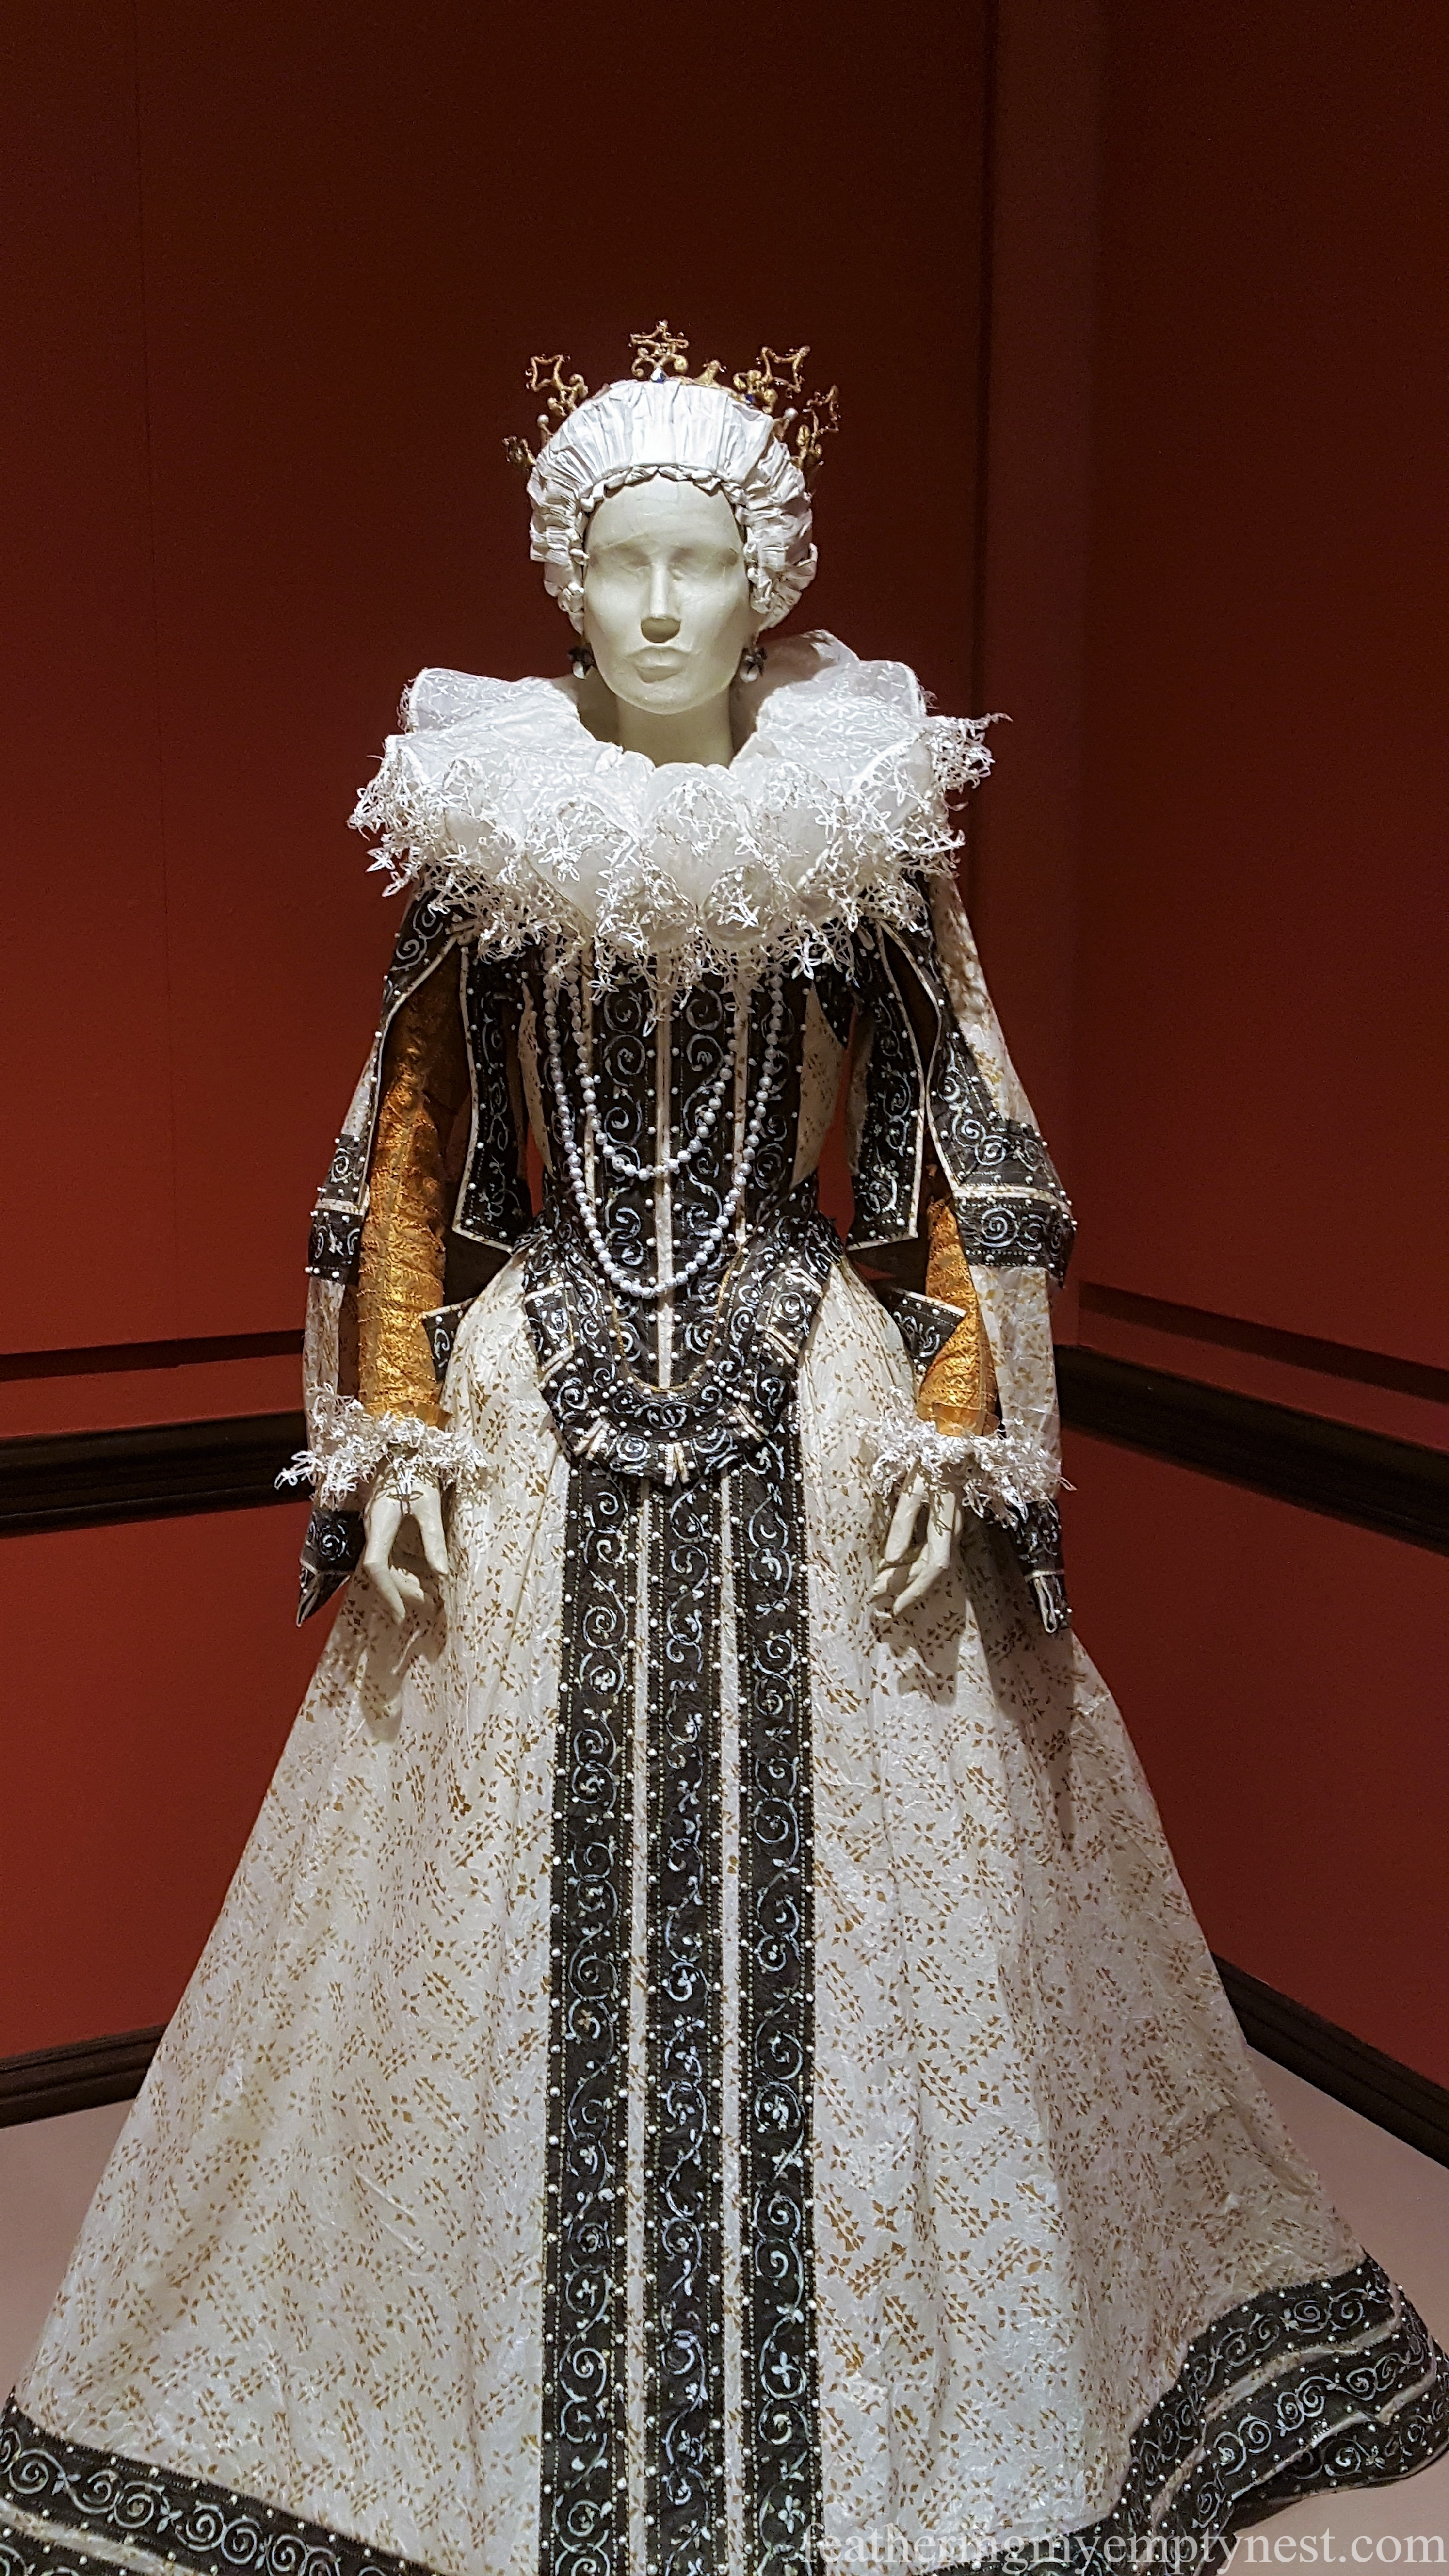 Medici Series of historical fashions by Isabelle de Borchgrave --Astonishing Paper Art Fashions